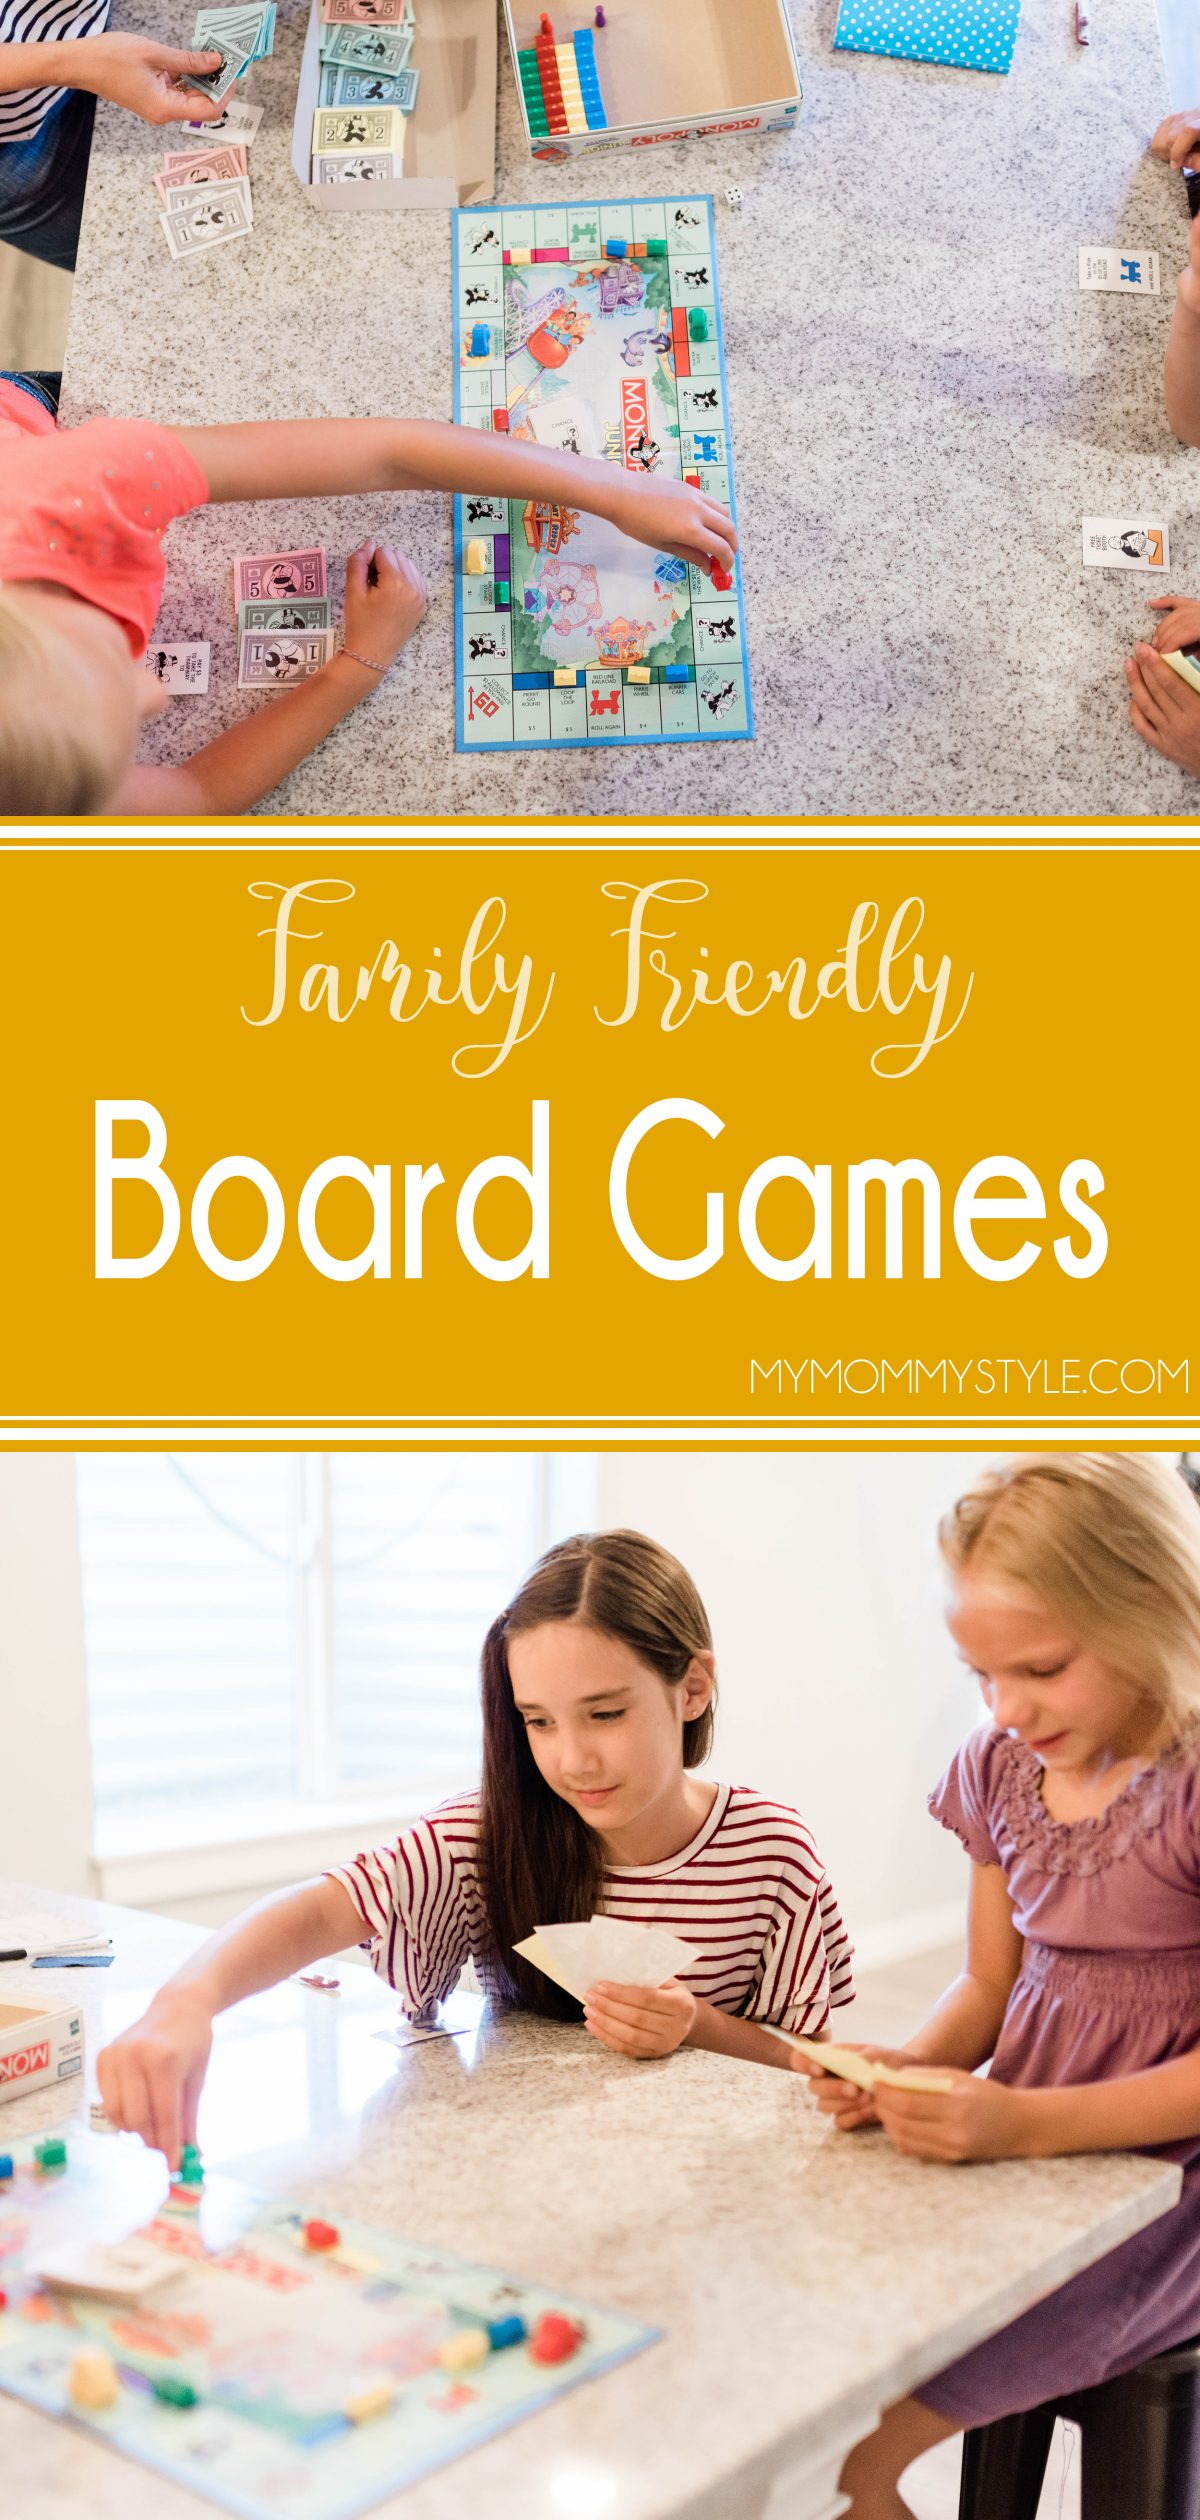 Here's a great list of family friendly board games that are perfect for all ages. You can play with kids and adults and everyone will have fun! via @mymommystyle